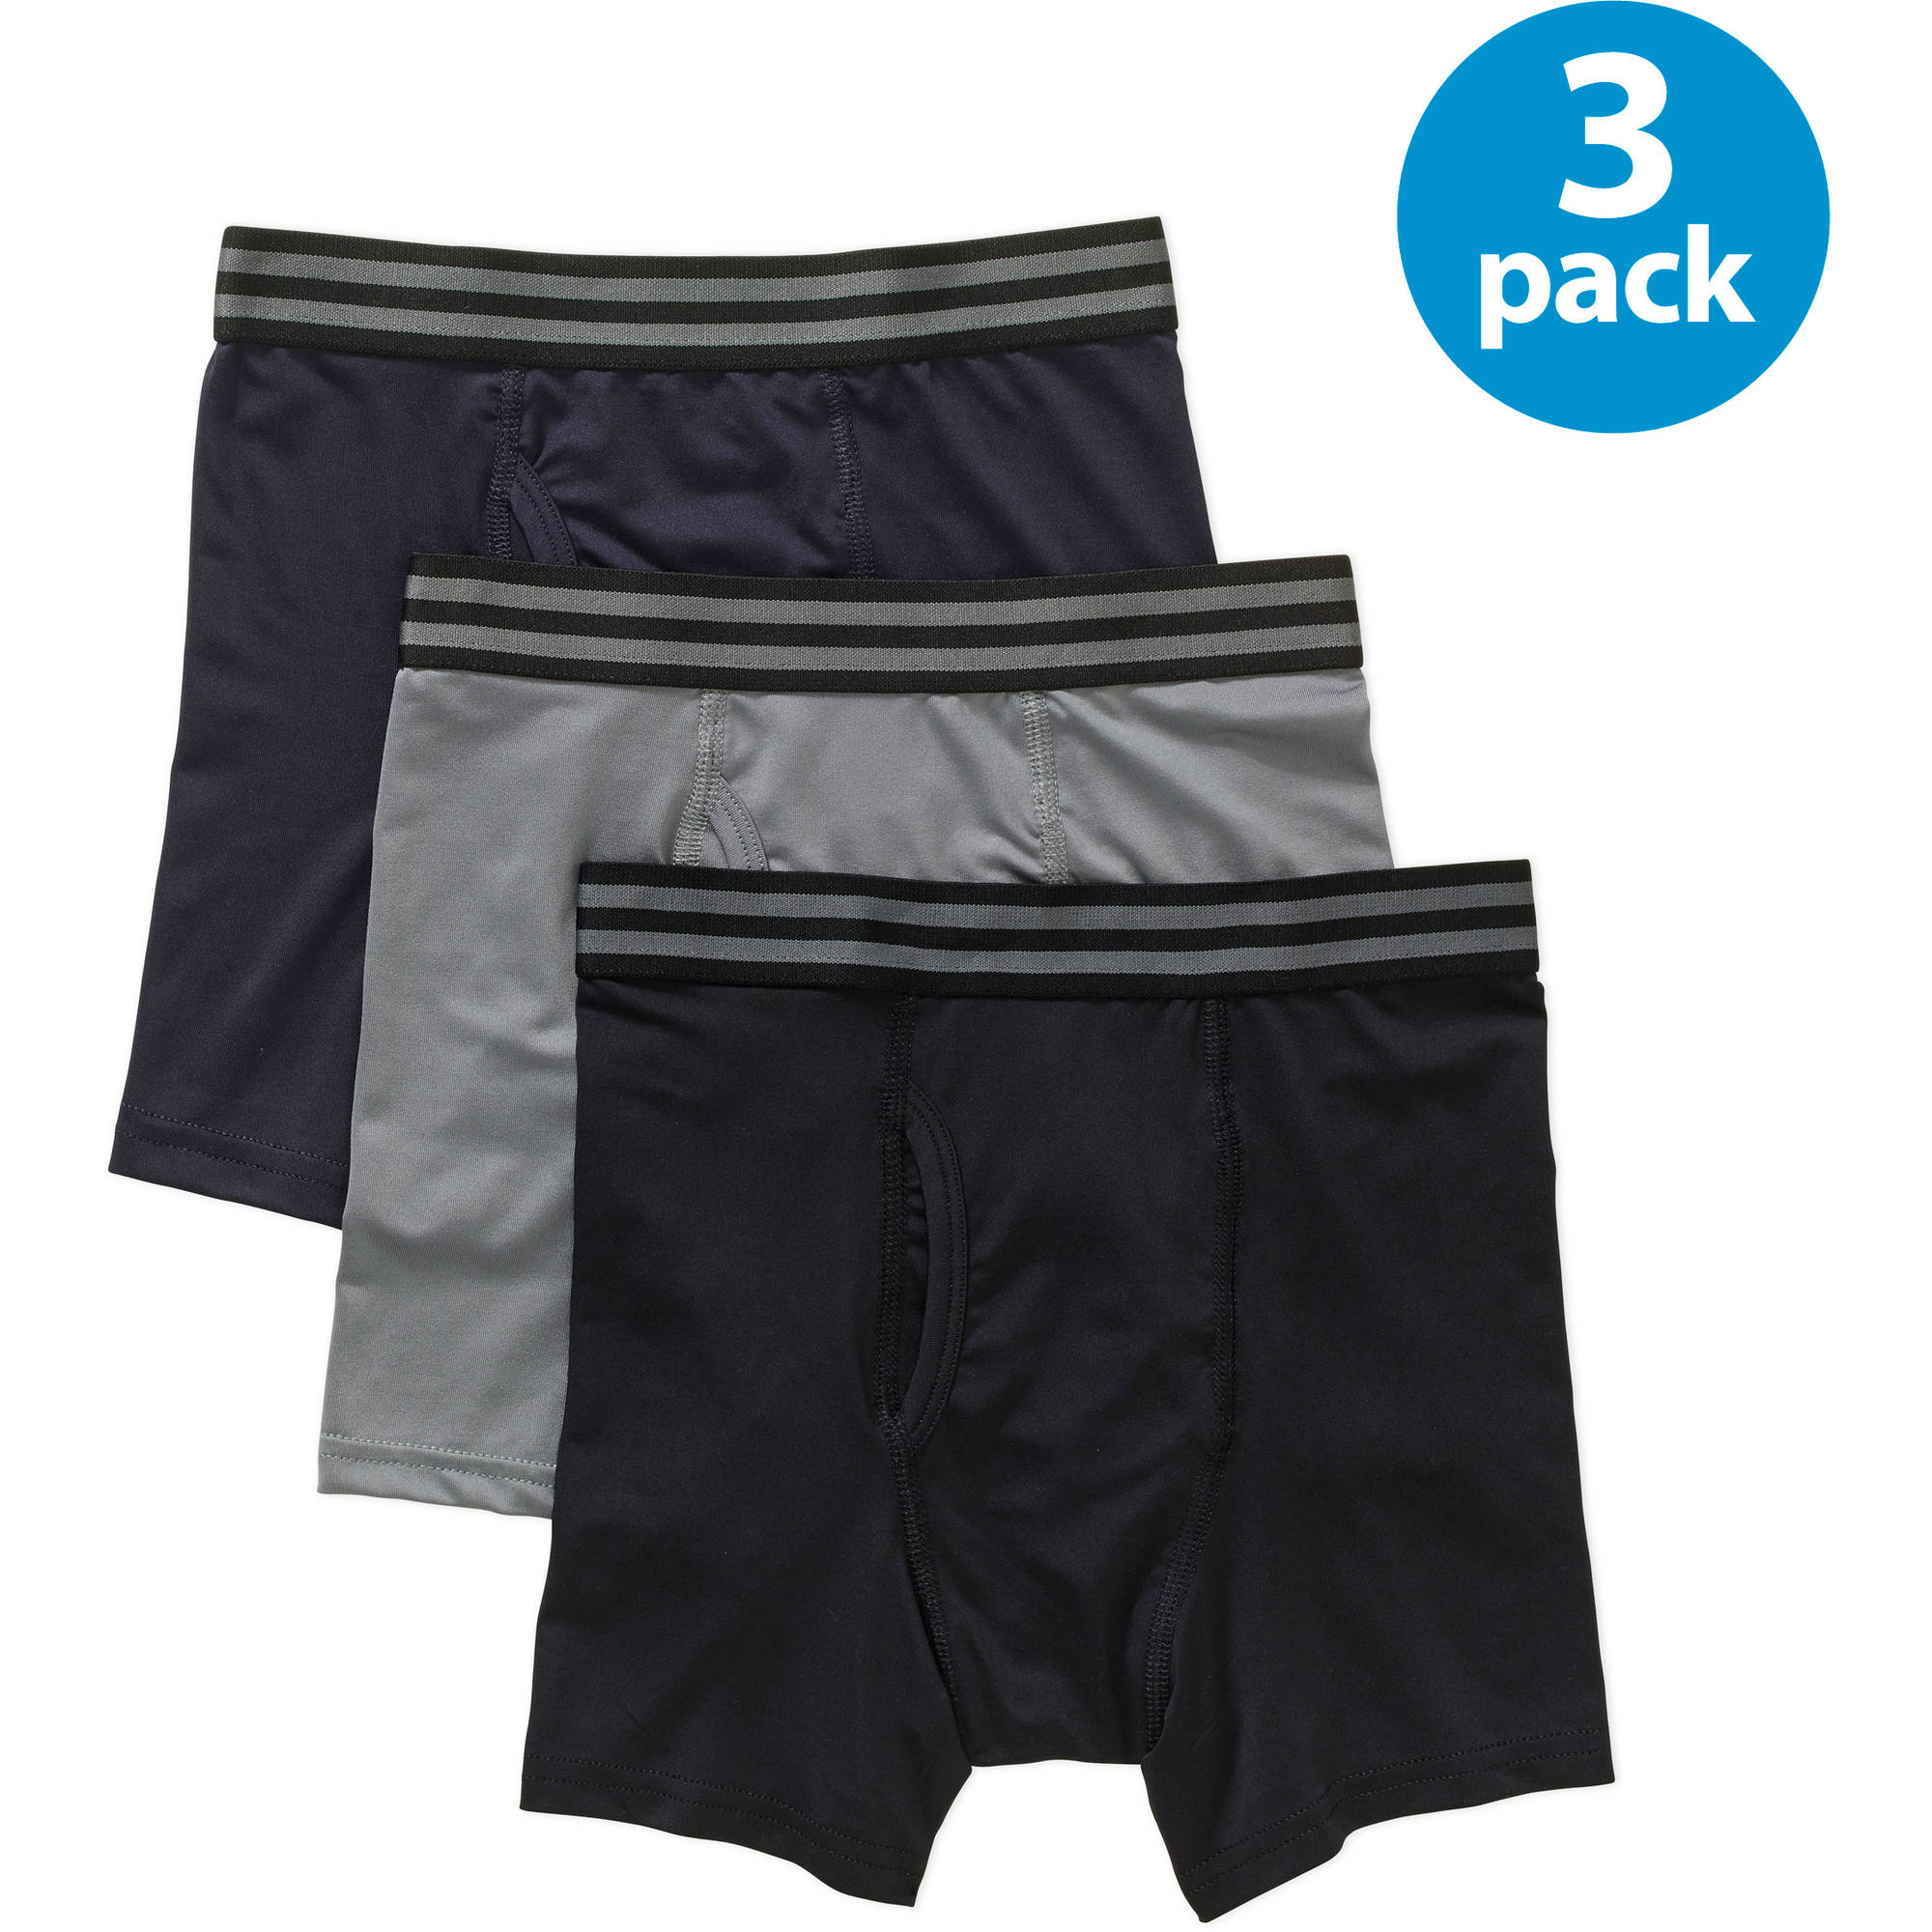 Starter Boys Basic Boxer Brief, 3 Pack